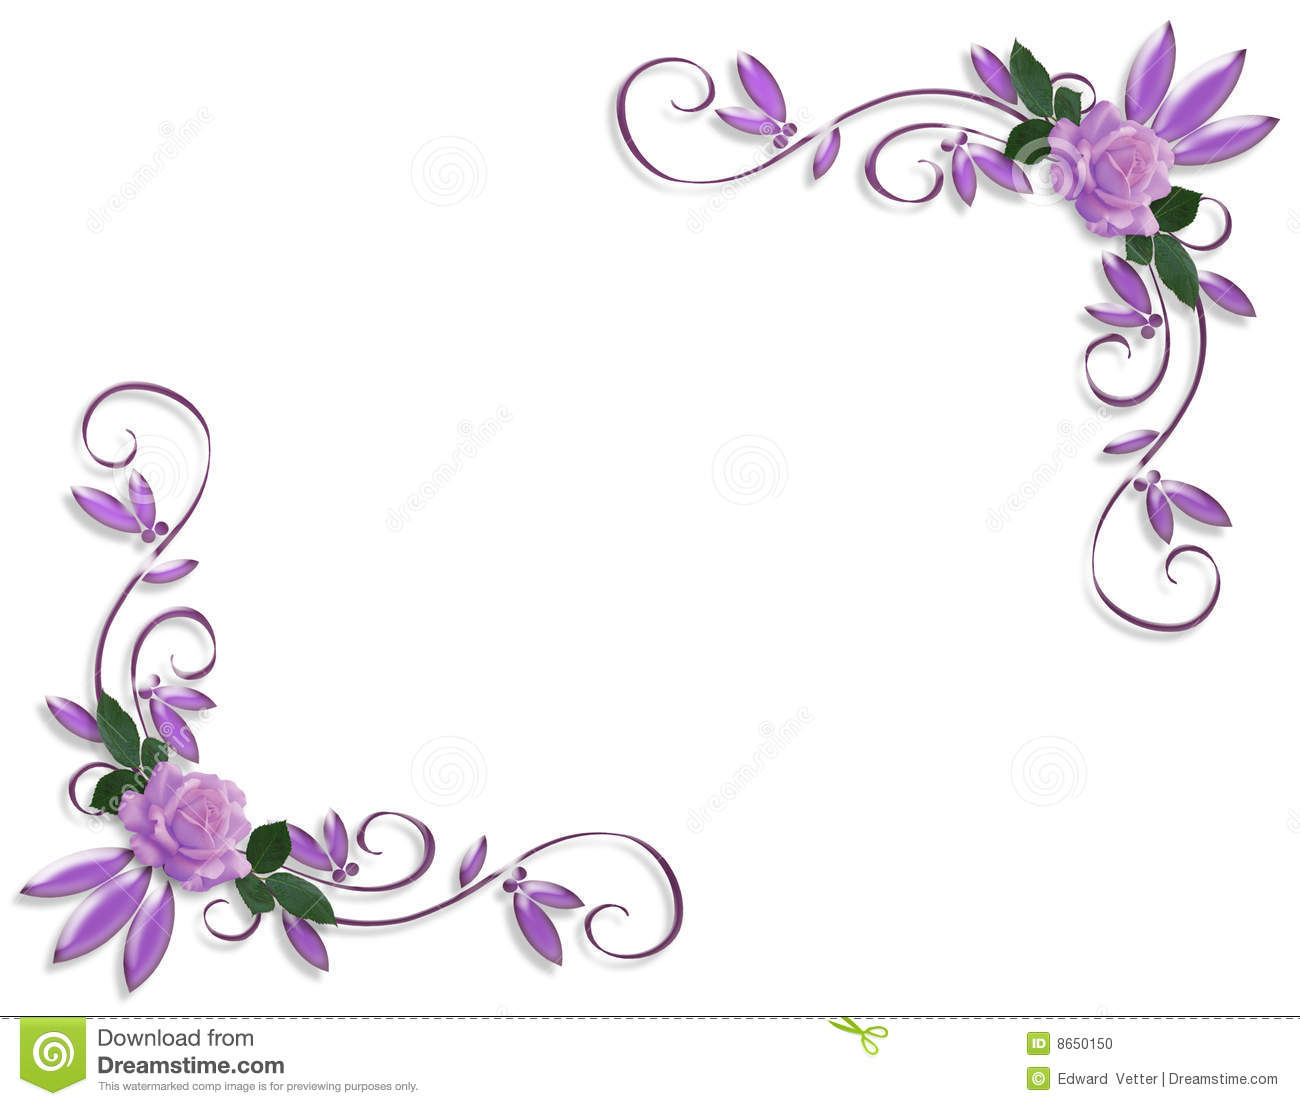 Lavender Roses Image And Illustration Composition Design Template On